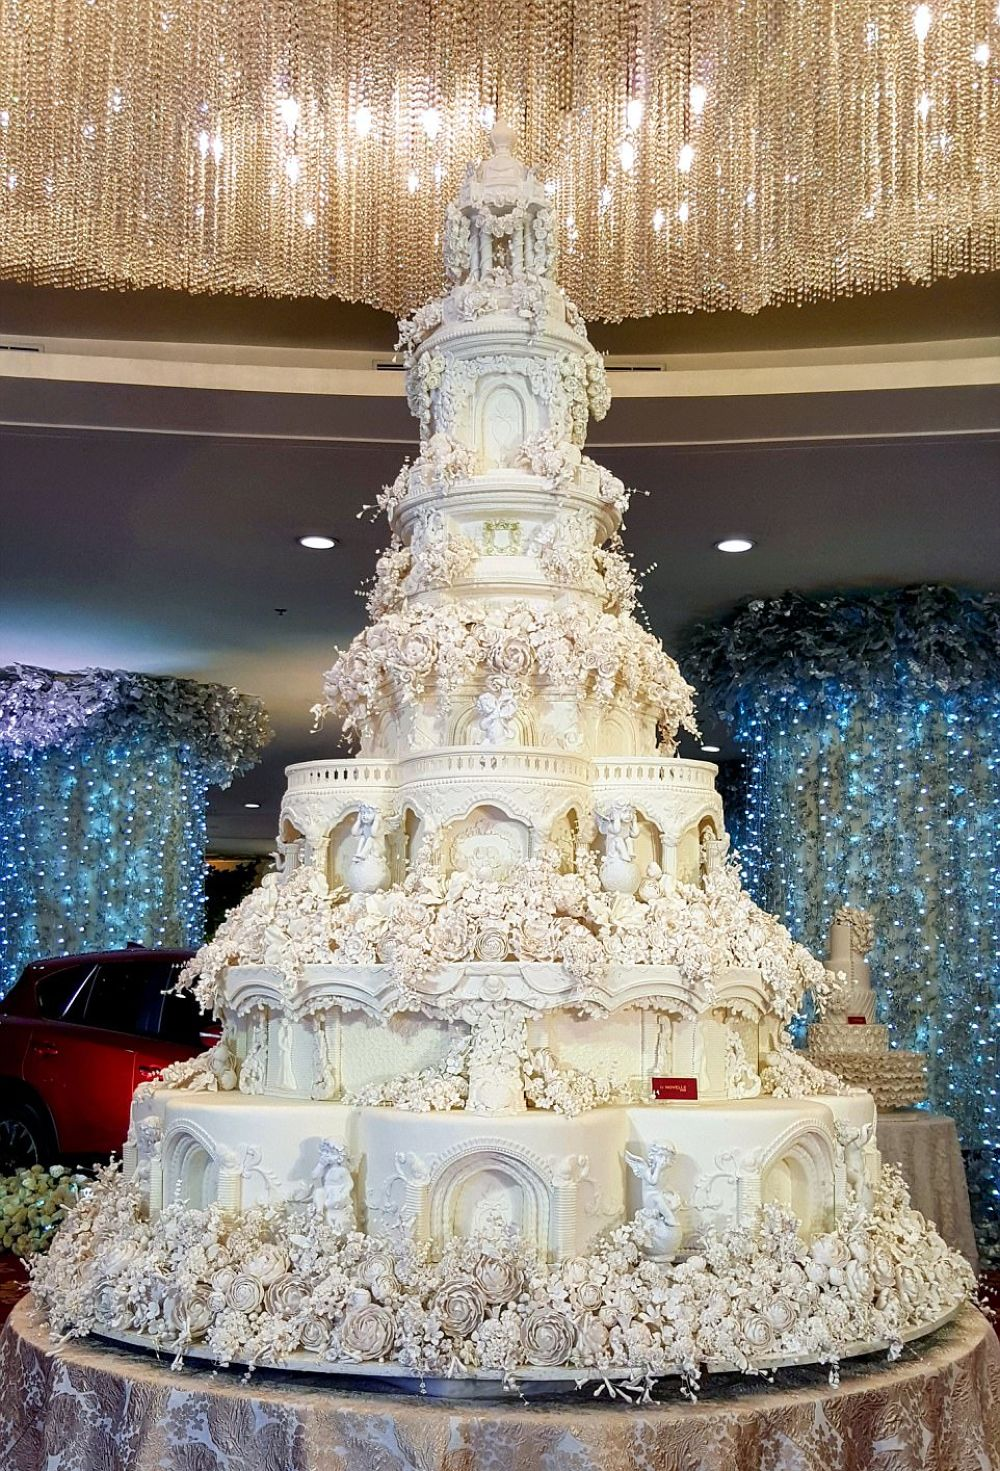 Castle Wedding Cake With Hundreds Of Individual Sugar Flowers